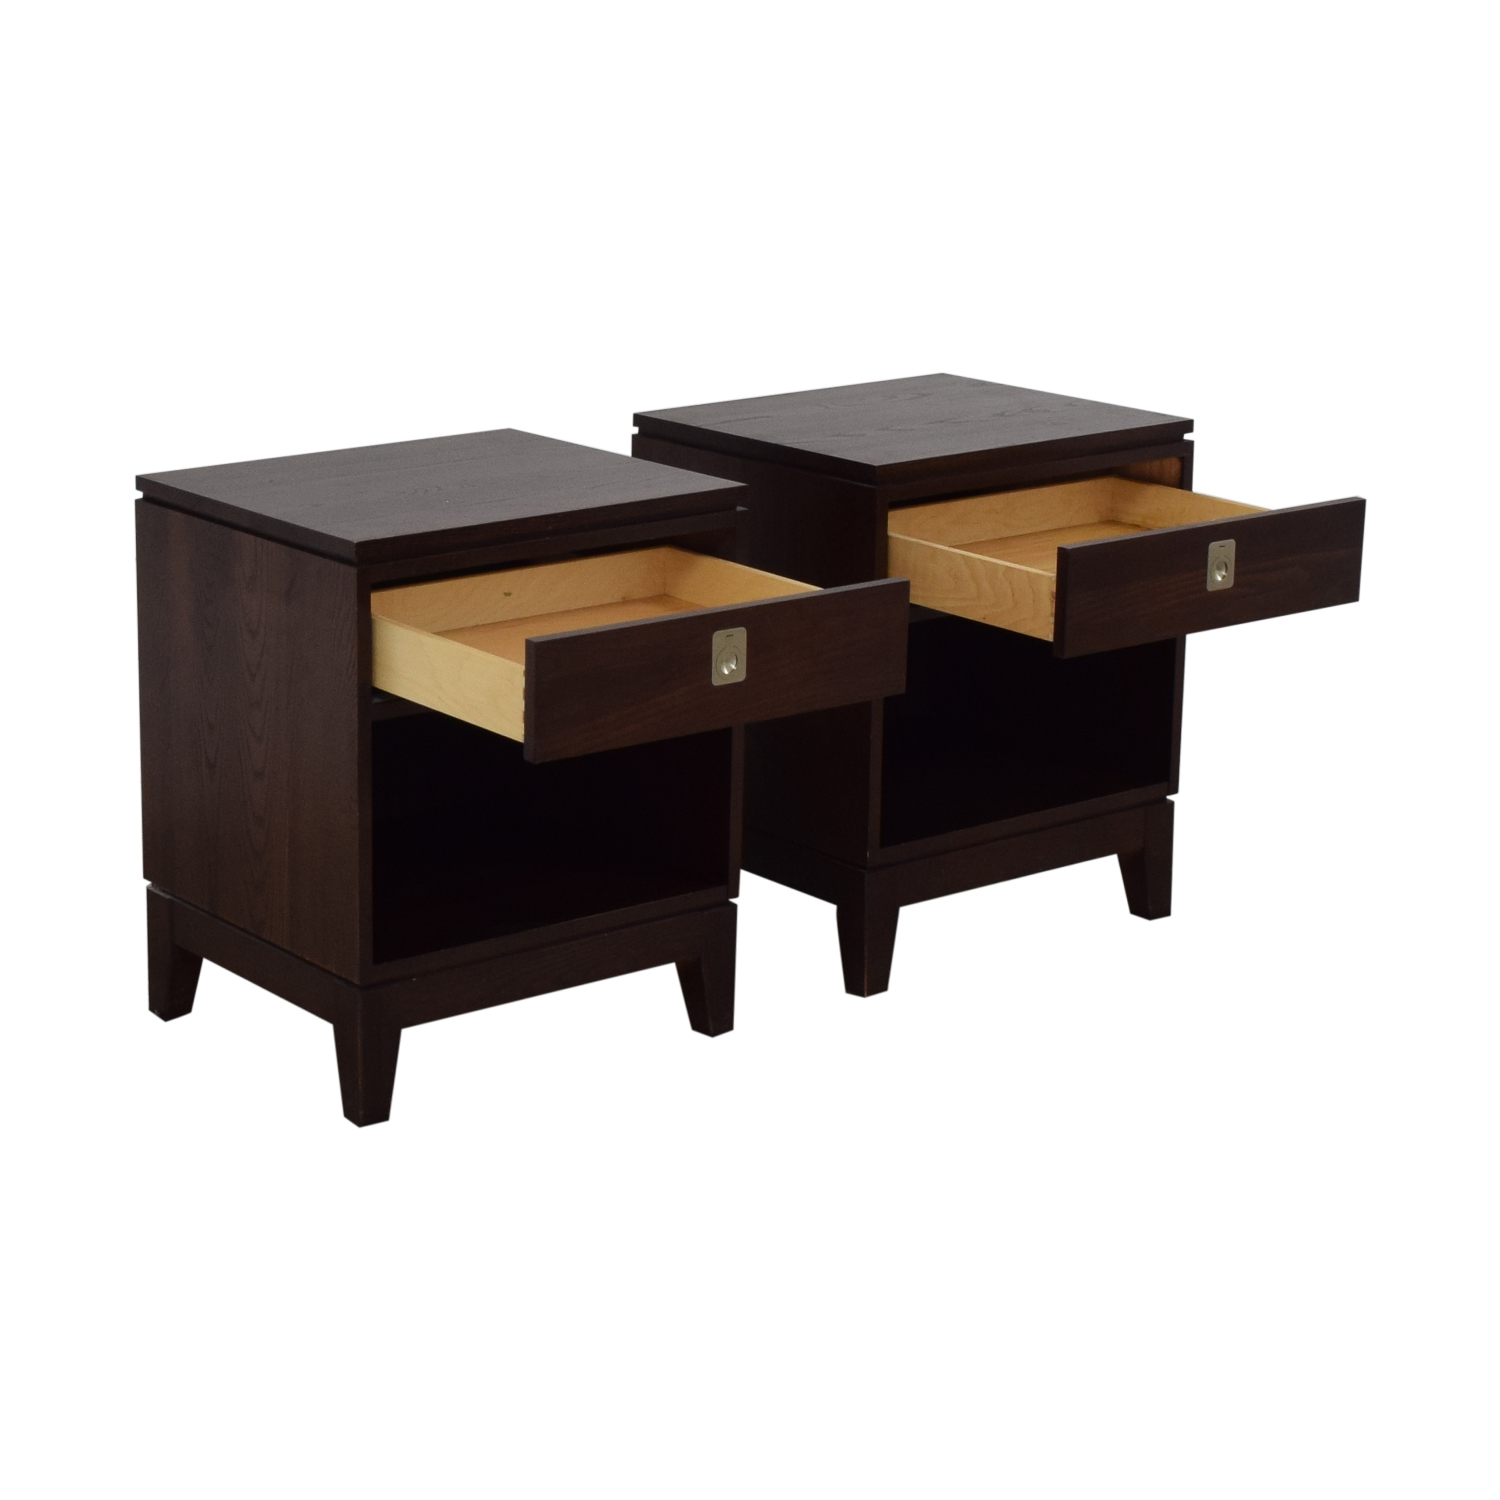 buy Vermont Tubbs Single Drawer Nightstands Vermont Tubbs End Tables